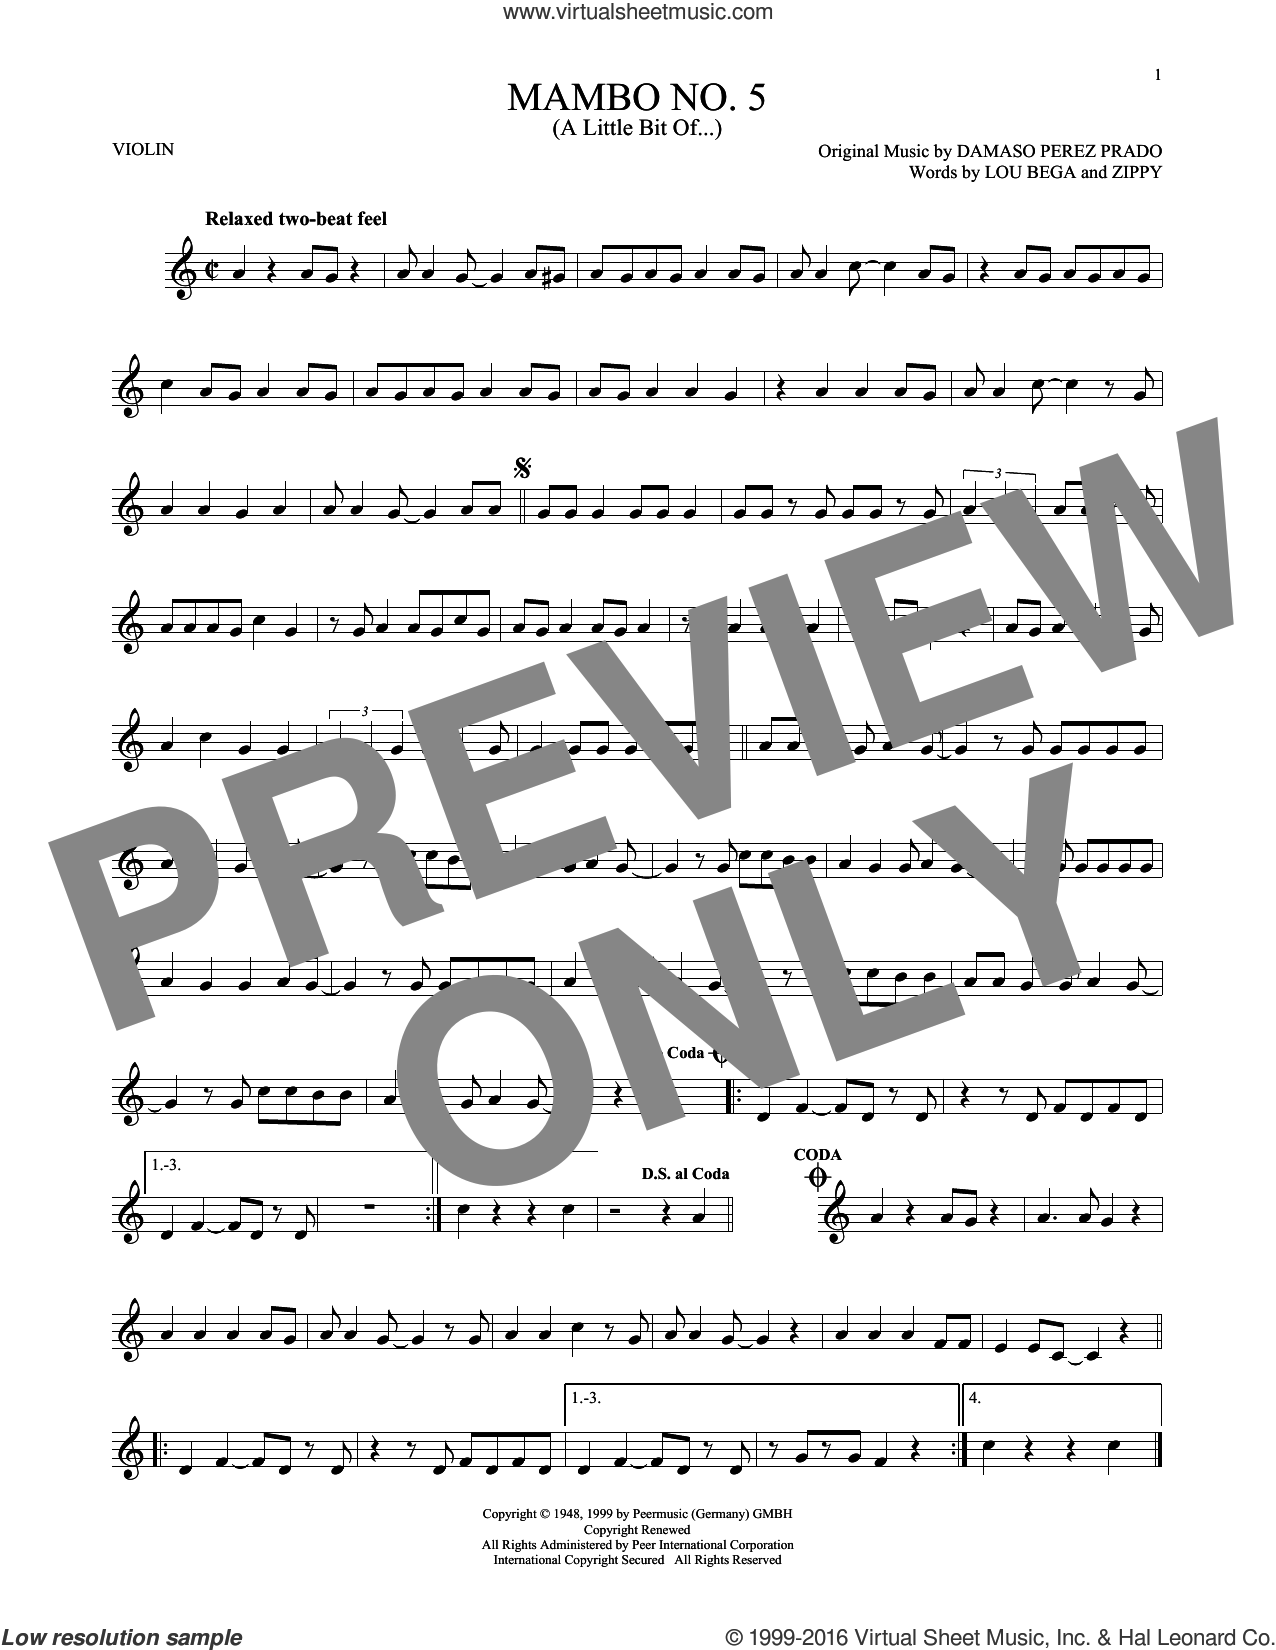 Mambo No. 5 (A Little Bit Of...) sheet music for violin solo by Lou Bega, Damaso Perez Prado and Zippy, intermediate skill level